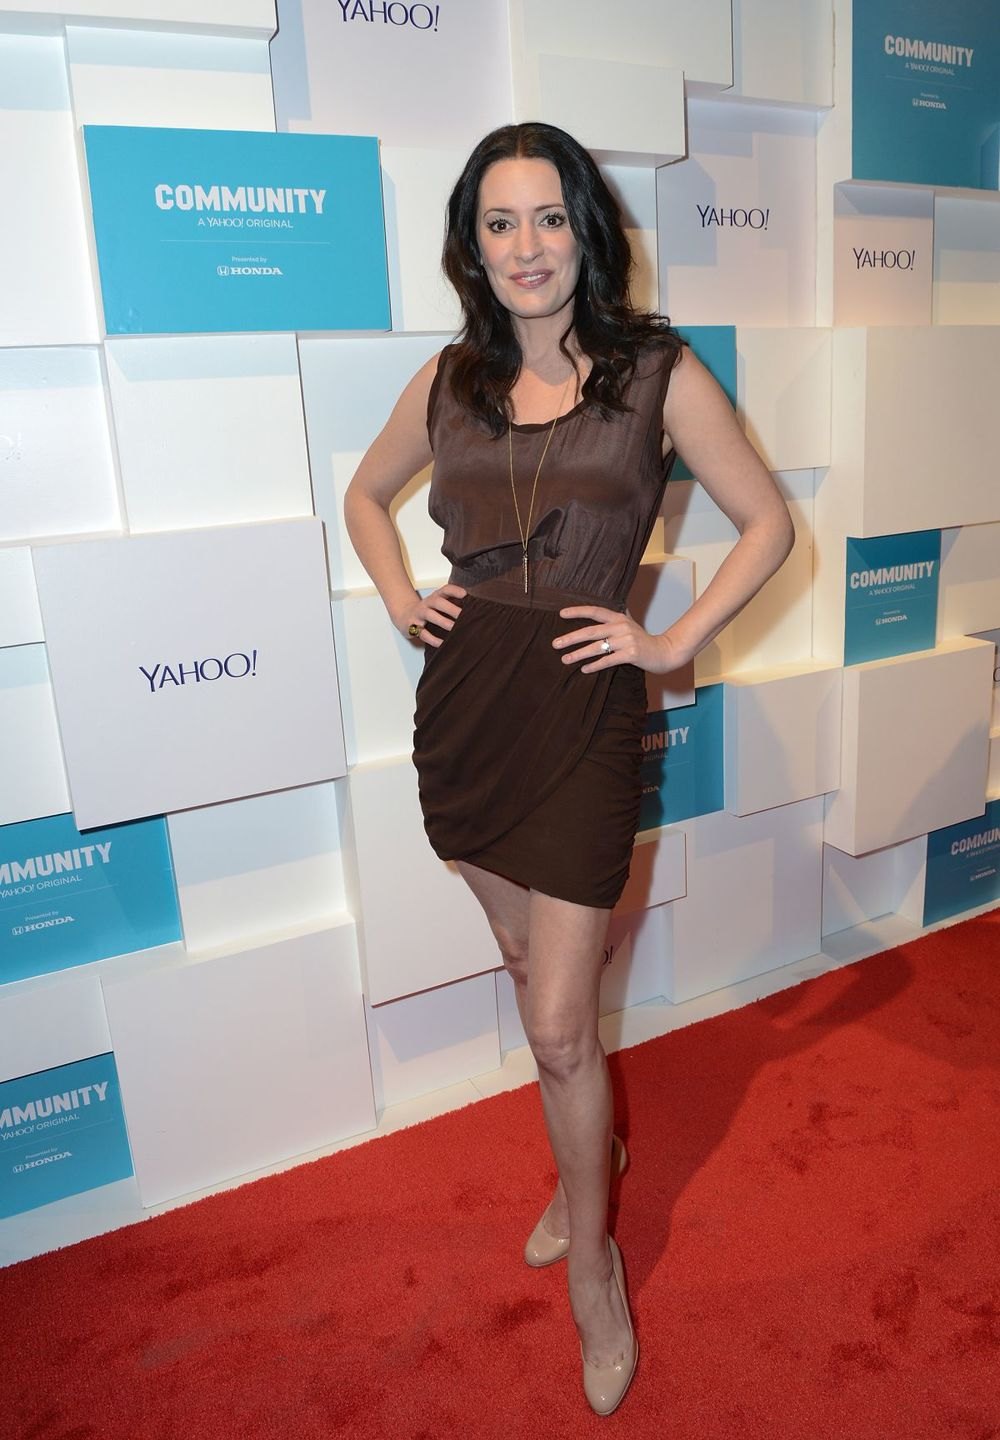 paget-brewster-attend-the-to-yahoo-s-community-greendale-school-dance-at-sxsw-in-austin_3.jpg